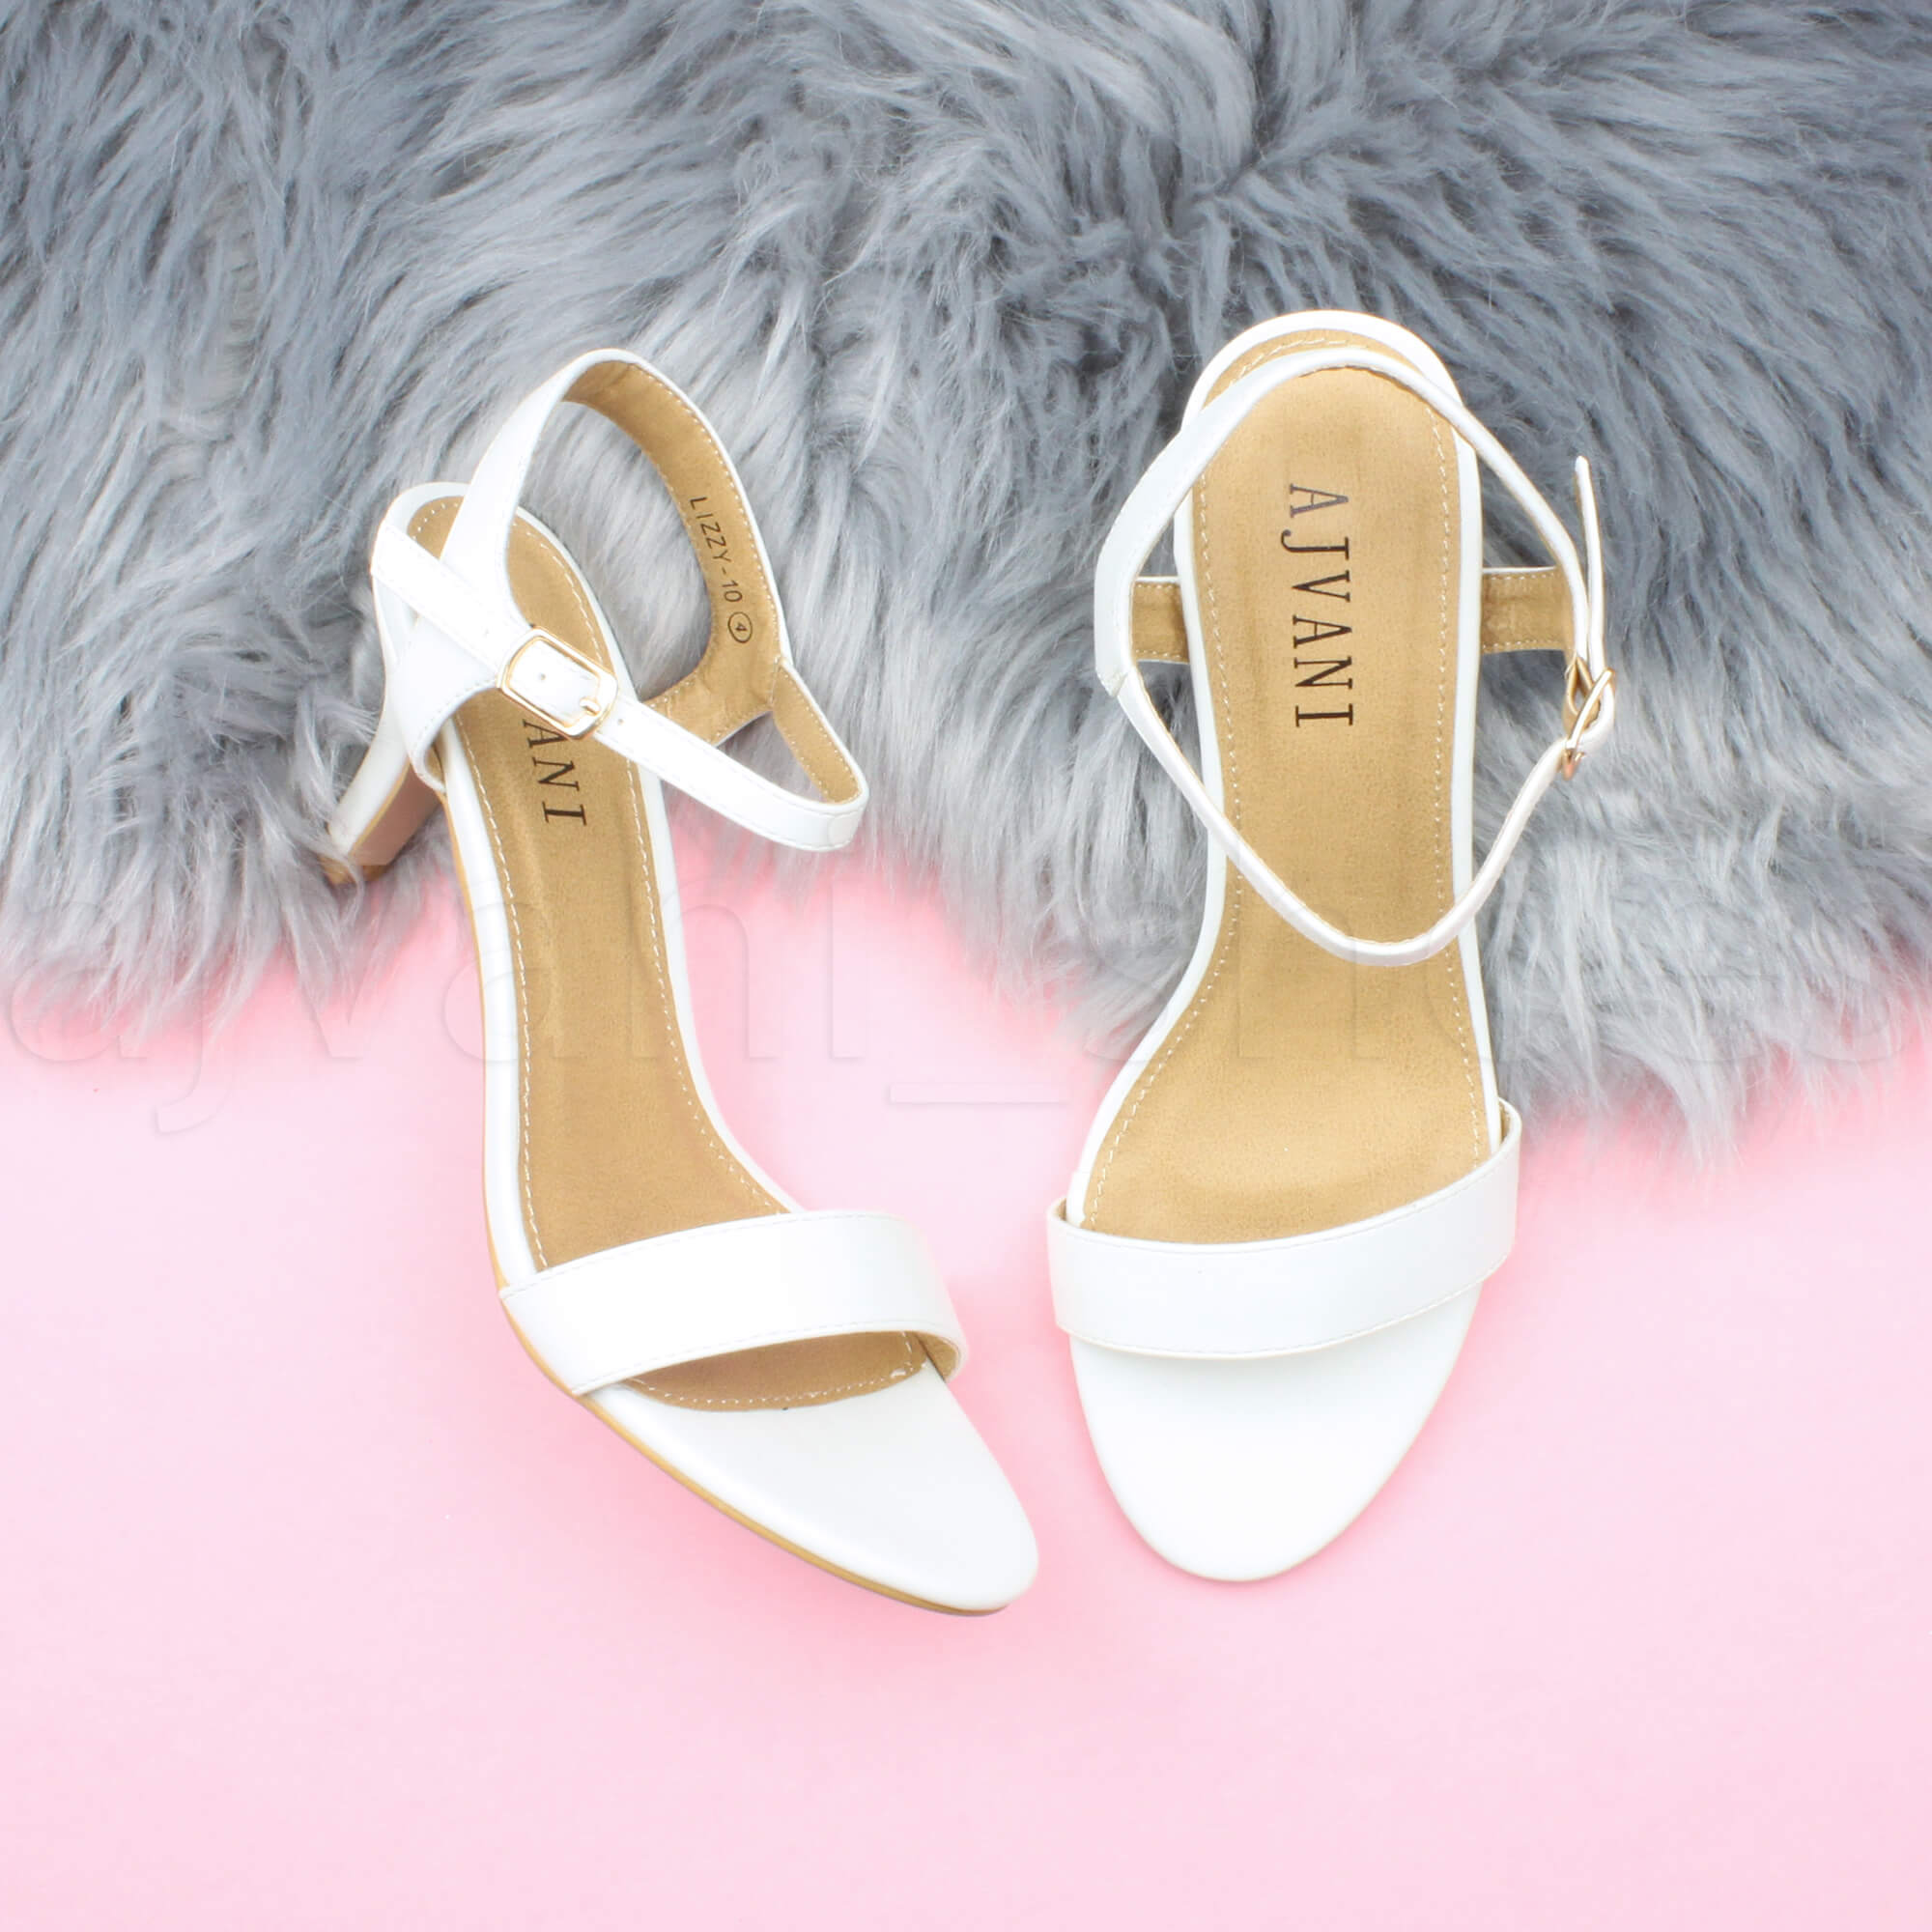 WOMENS-LADIES-HIGH-HEEL-BUCKLE-STRAPPY-BASIC-BARELY-THERE-SANDALS-SHOES-SIZE thumbnail 145